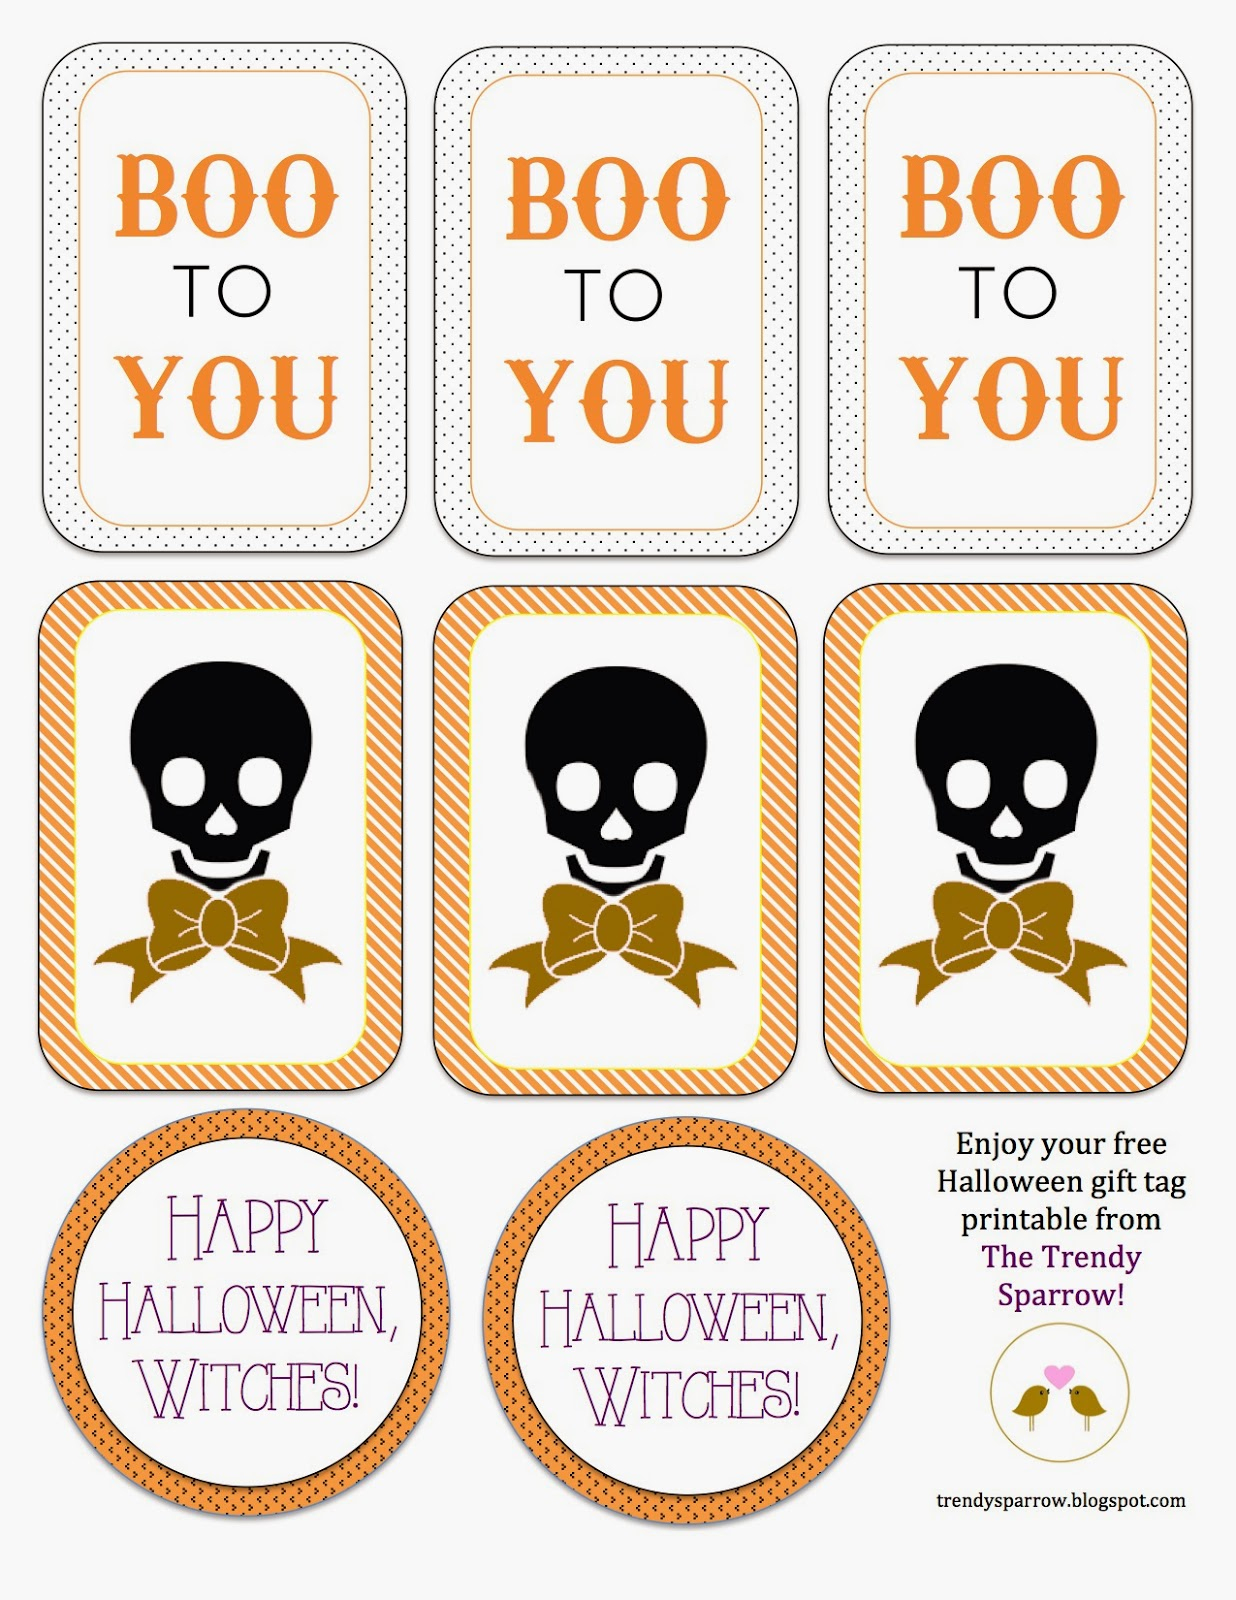 The Trendy Sparrow: Free Printable: Halloween Gift Tags - Free Printable Gift Bag Tags